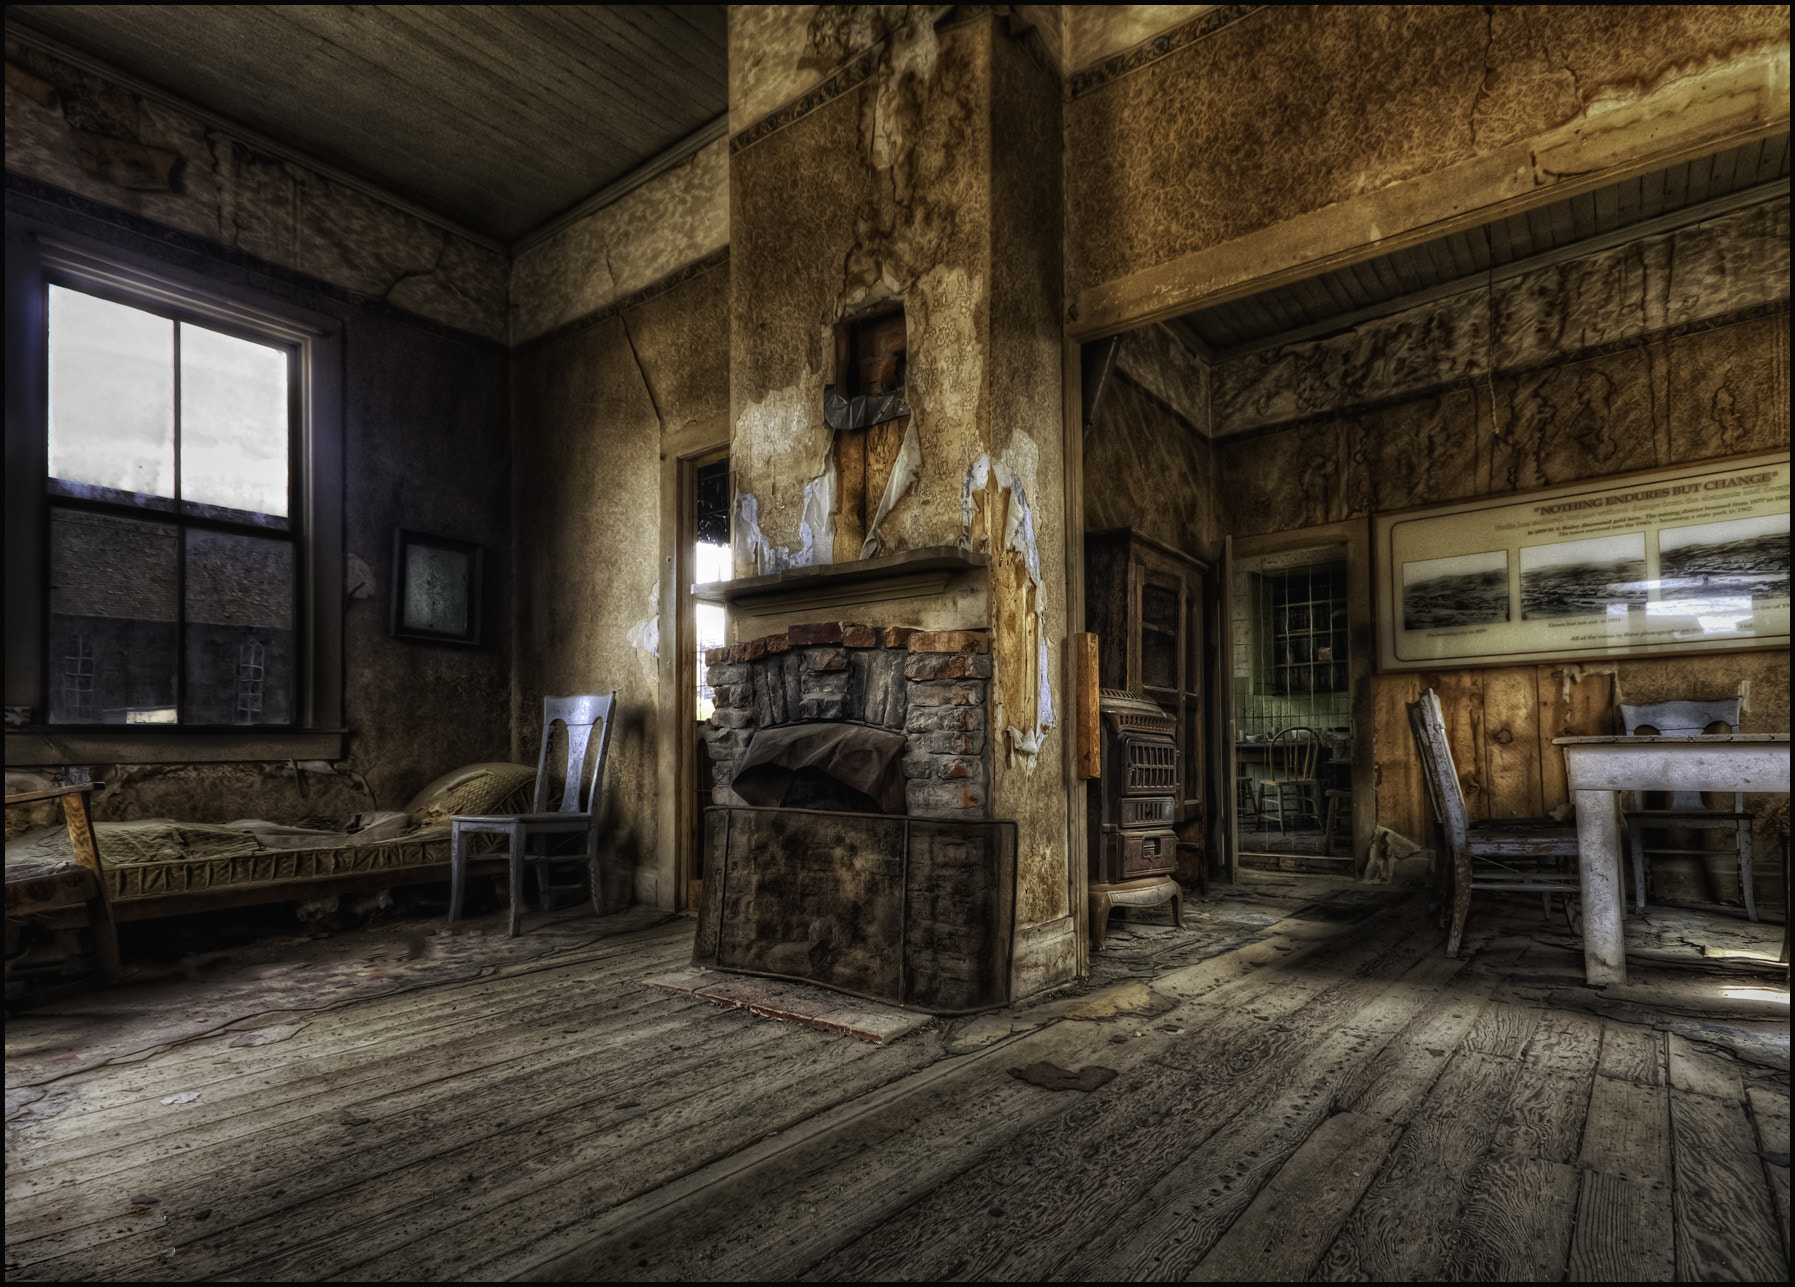 Photograph Bodie Abandon by Marianne Bush on 500px